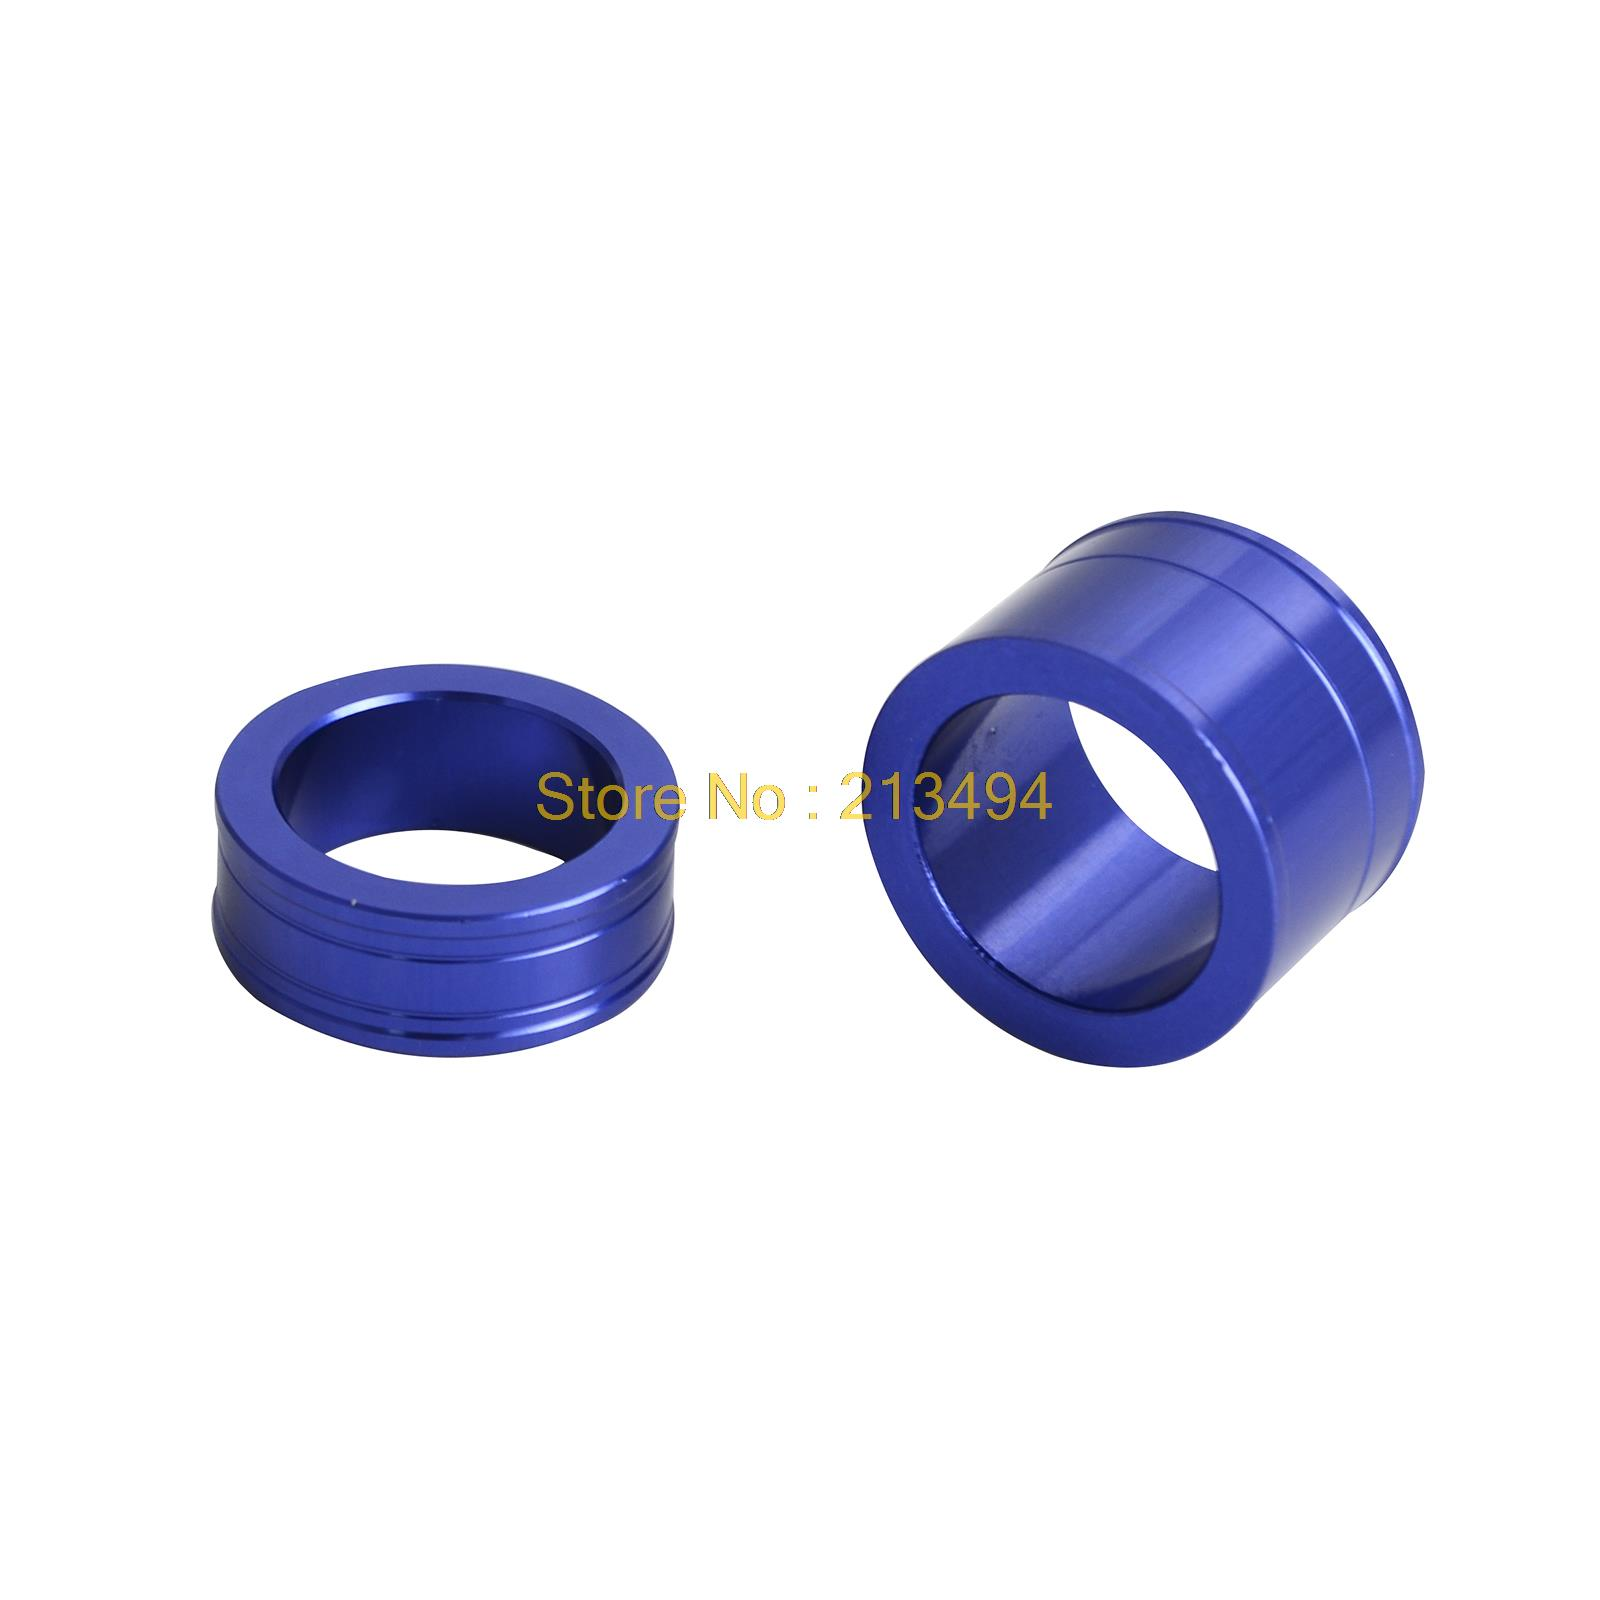 CNC Billet Aluminum Front Wheel Spacer Hub Collar For Yamaha YZ250F YZ450F 2014 2015 2016 2017 купить